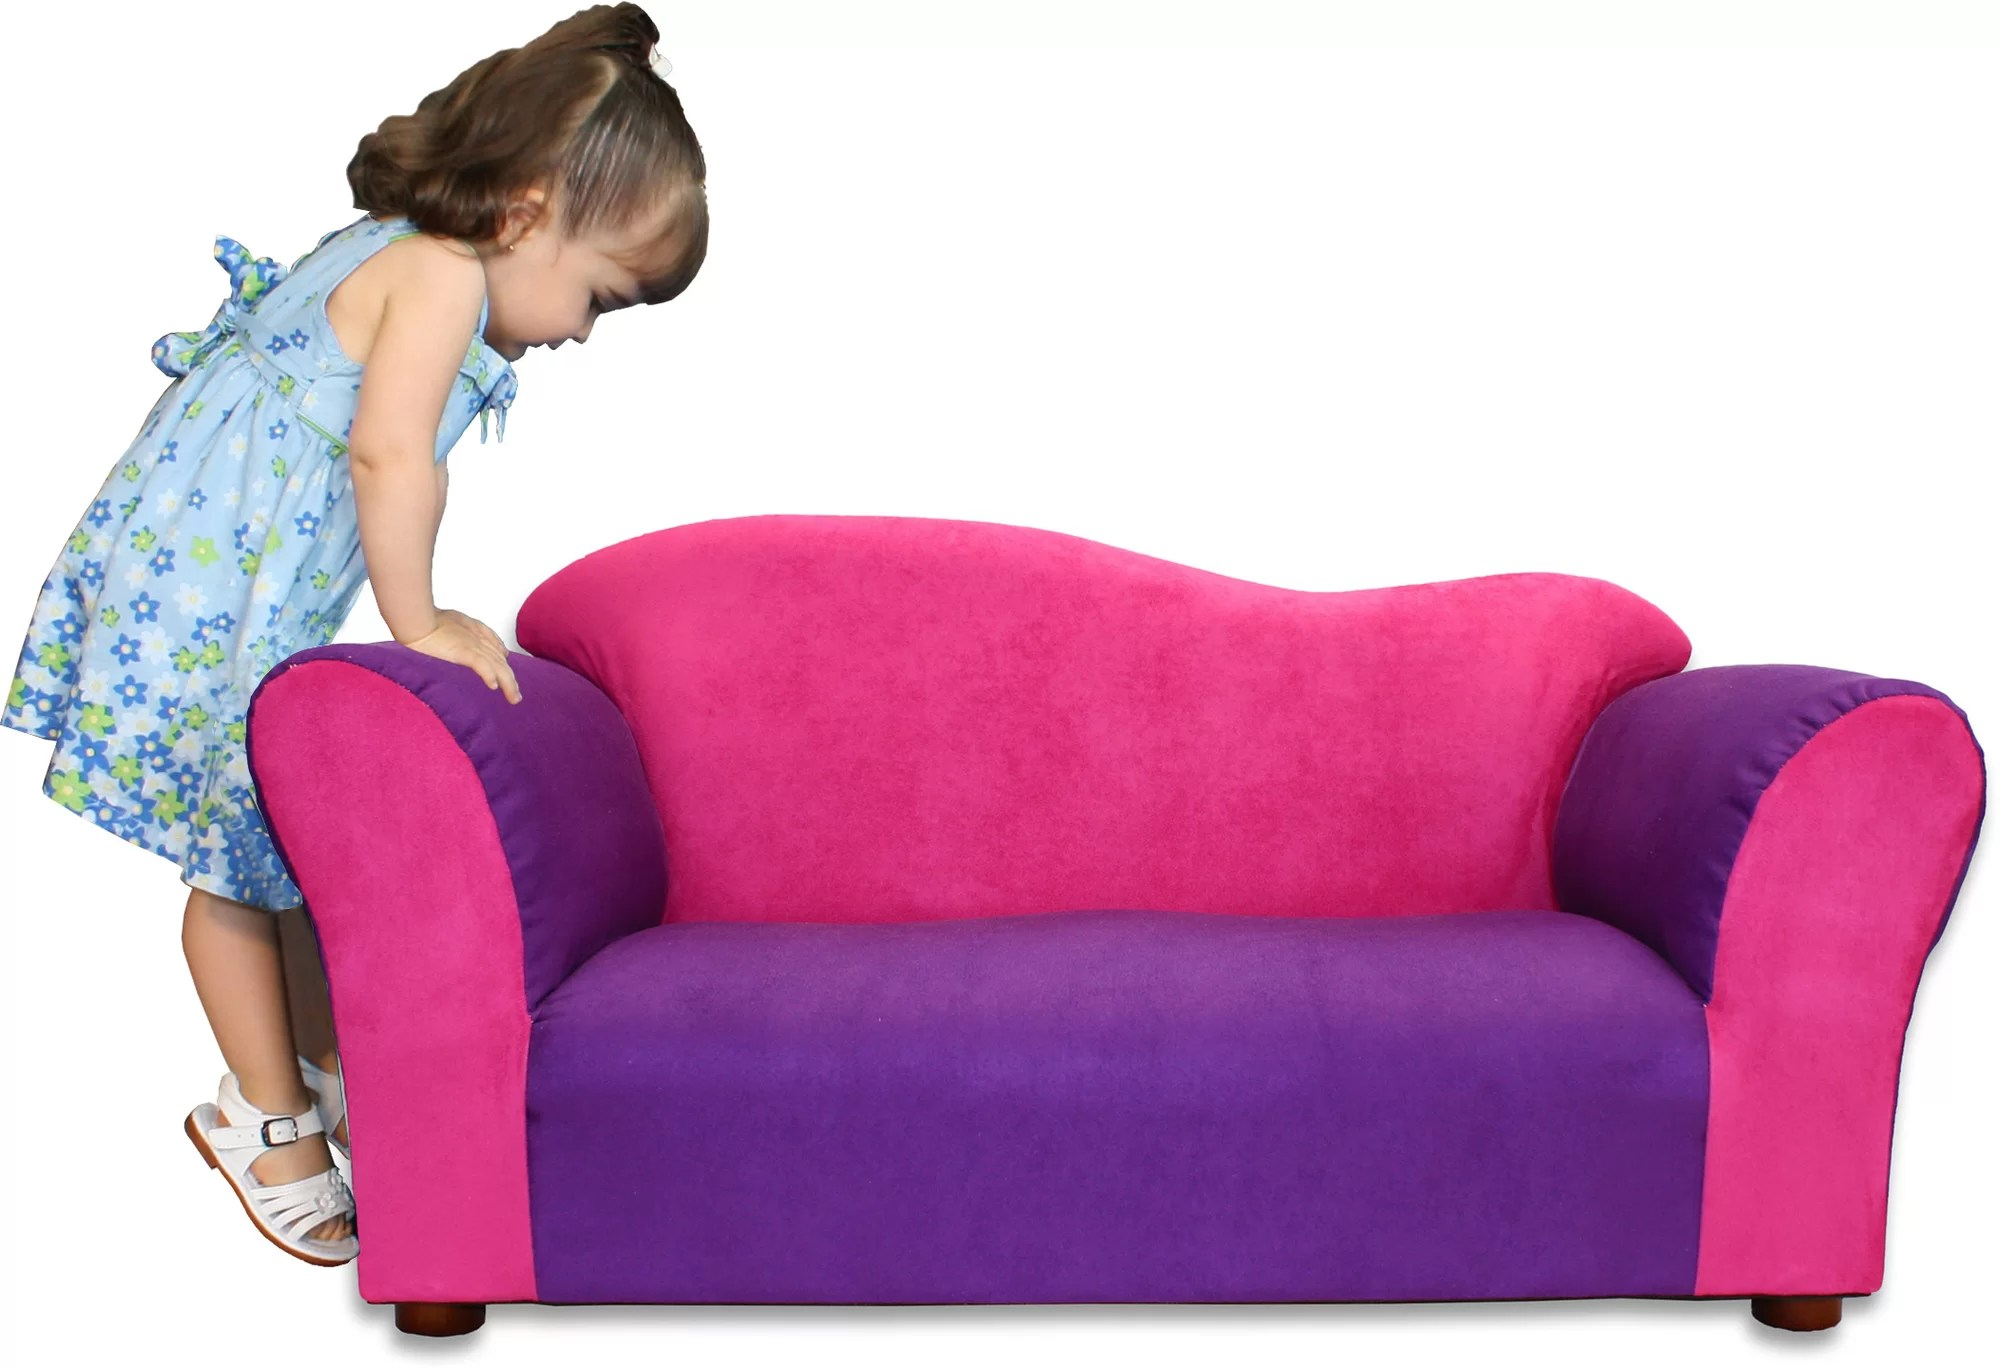 Sofa Chair For Toddler Purple Bedroom Ideas Purple Furniture